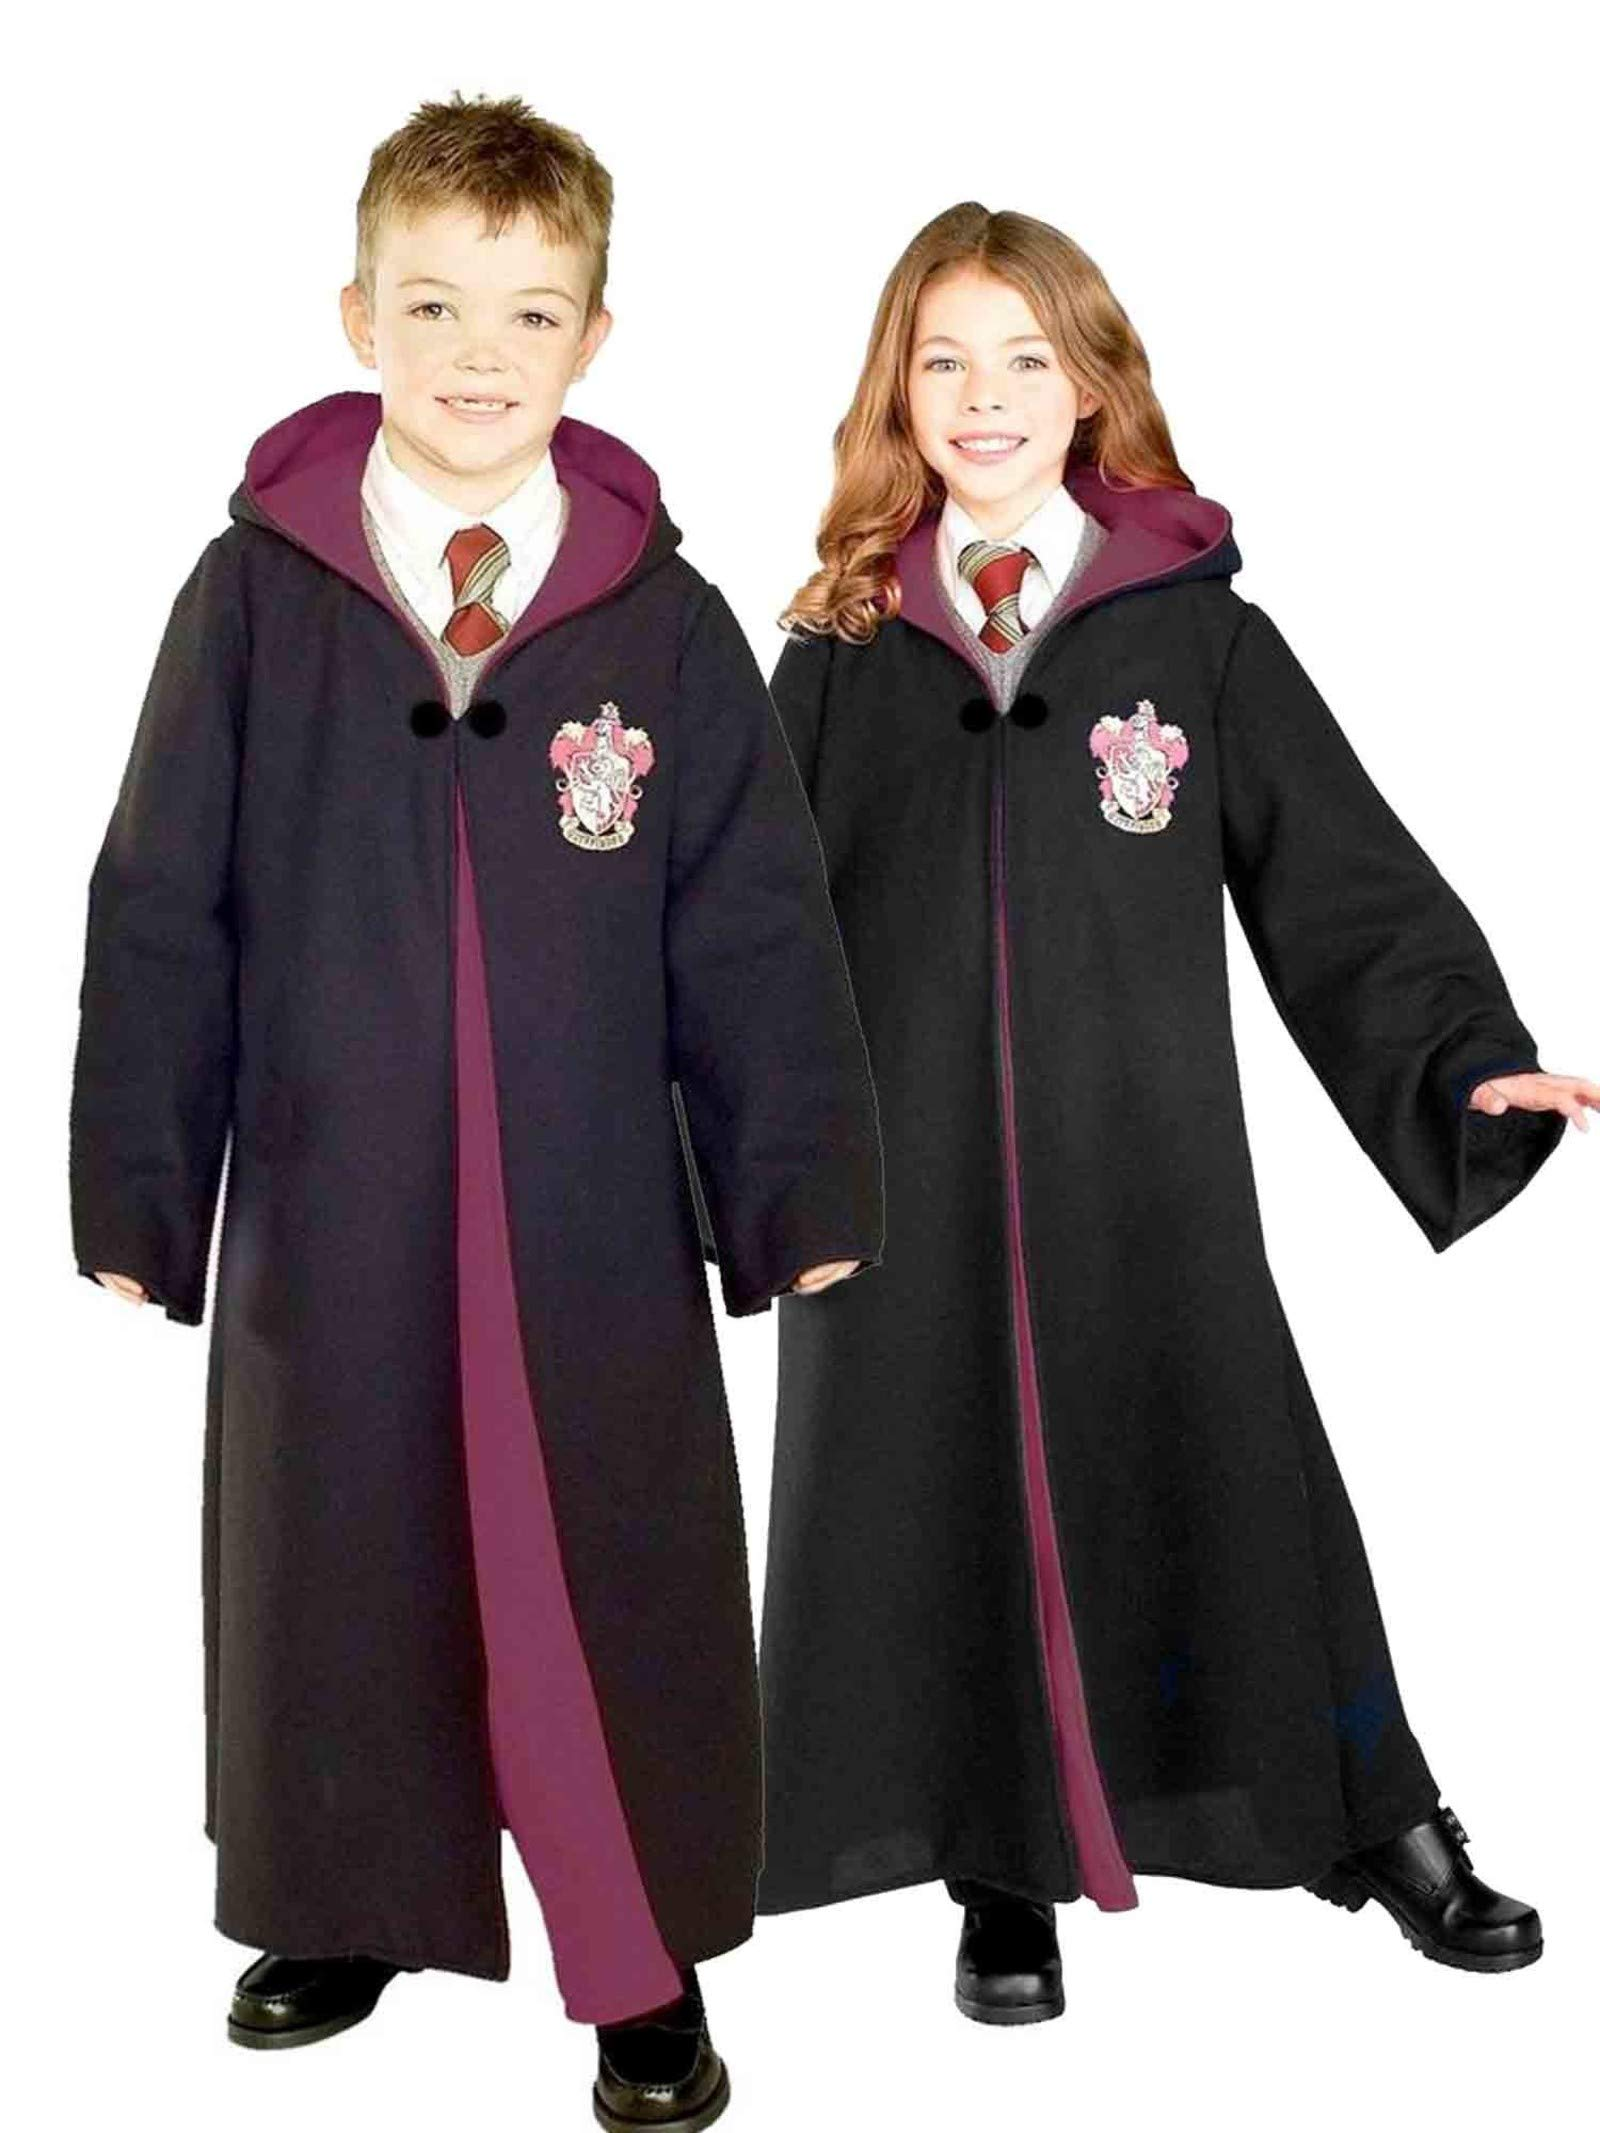 Rubie's Harry Potter Child's Deluxe Gryffindor Costume Robe, Large